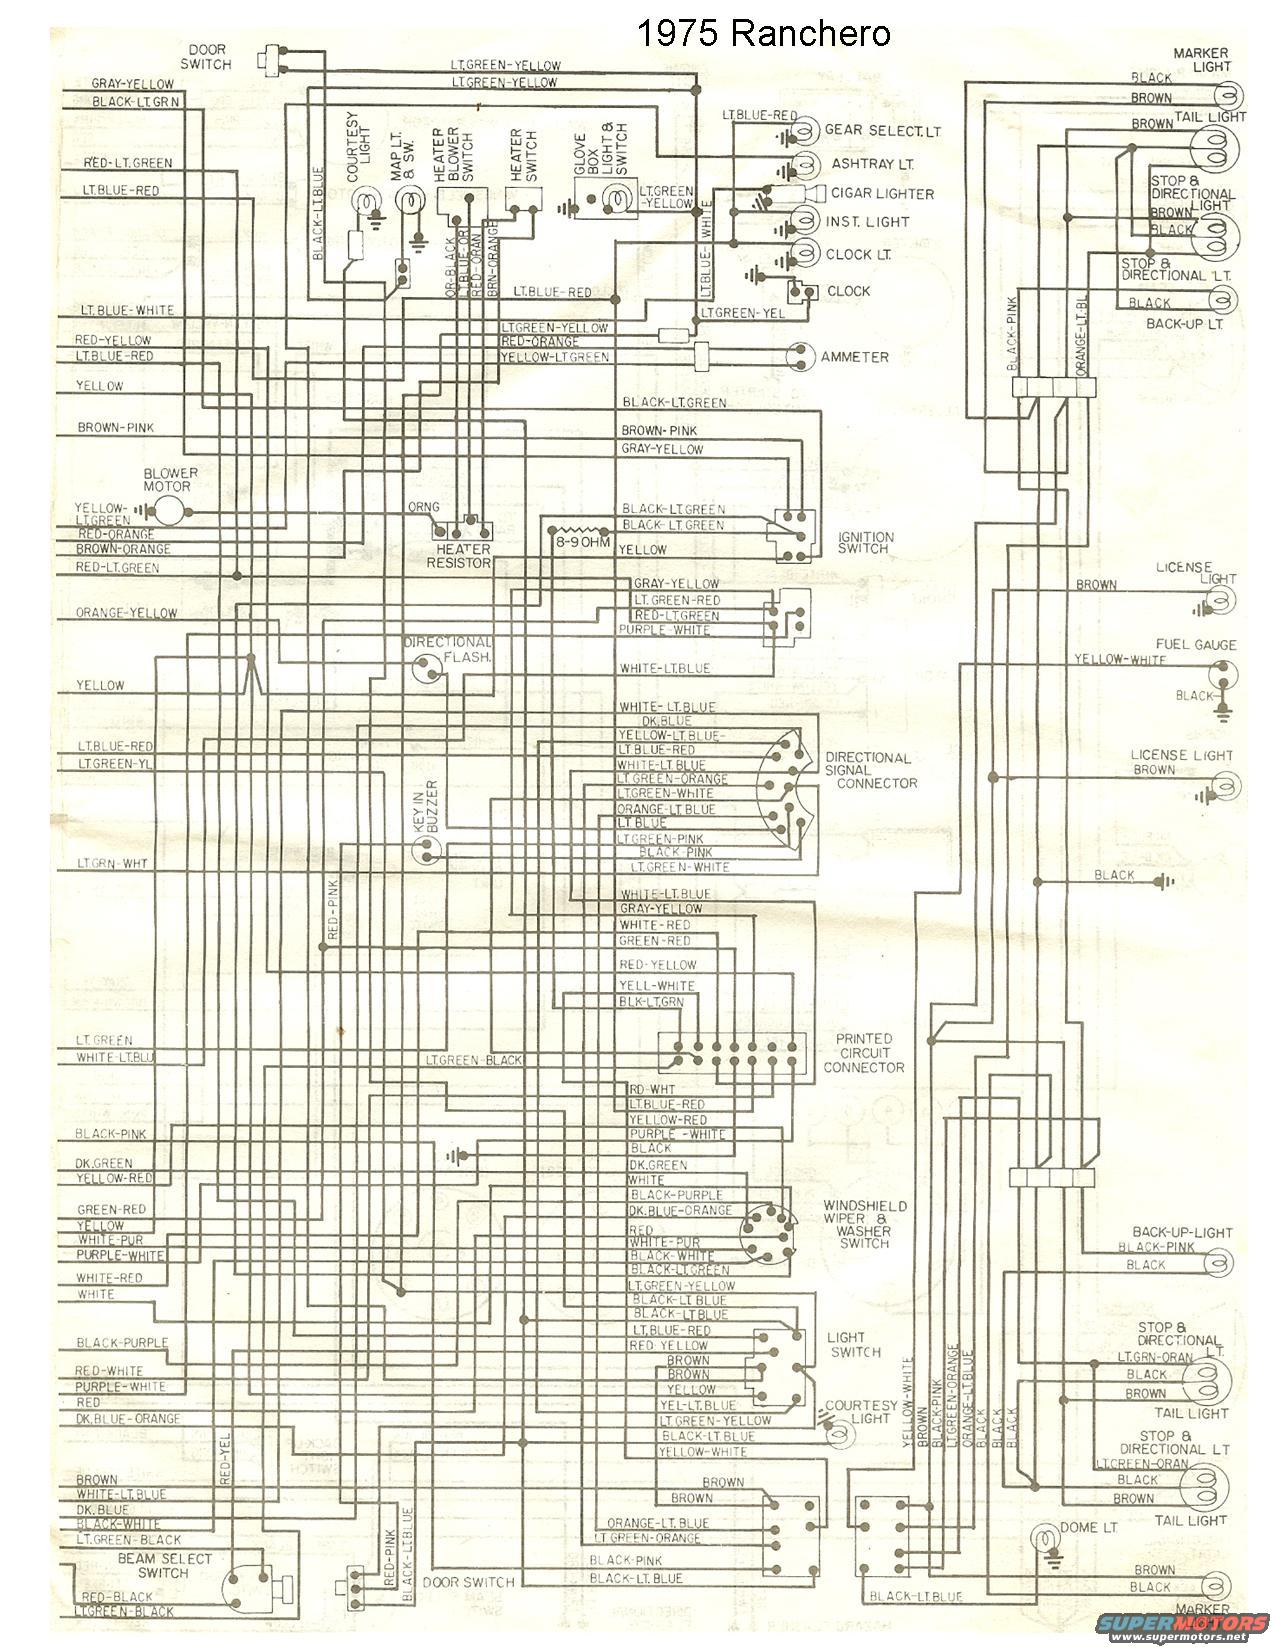 1975 harley davidson sportster wiring diagram ceiling fan speed control switch free engine image